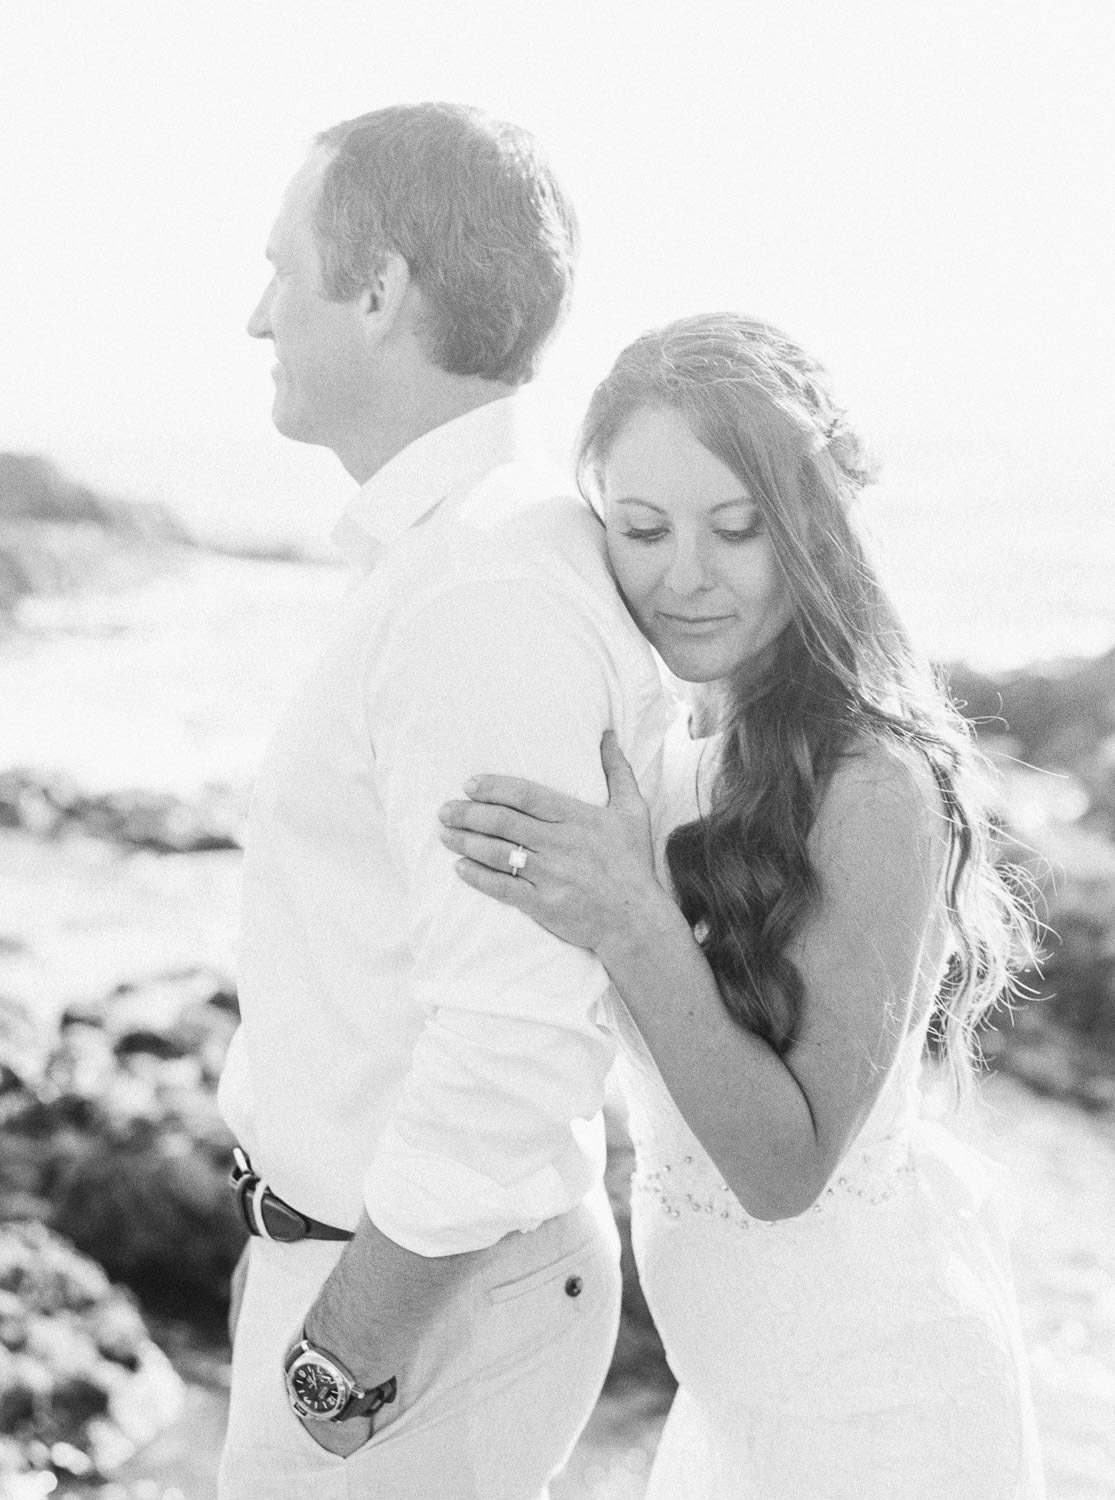 Big-Sur-Elopement-Santa-Barbara-Fine-Art-Wedding-Photography-343.jpg